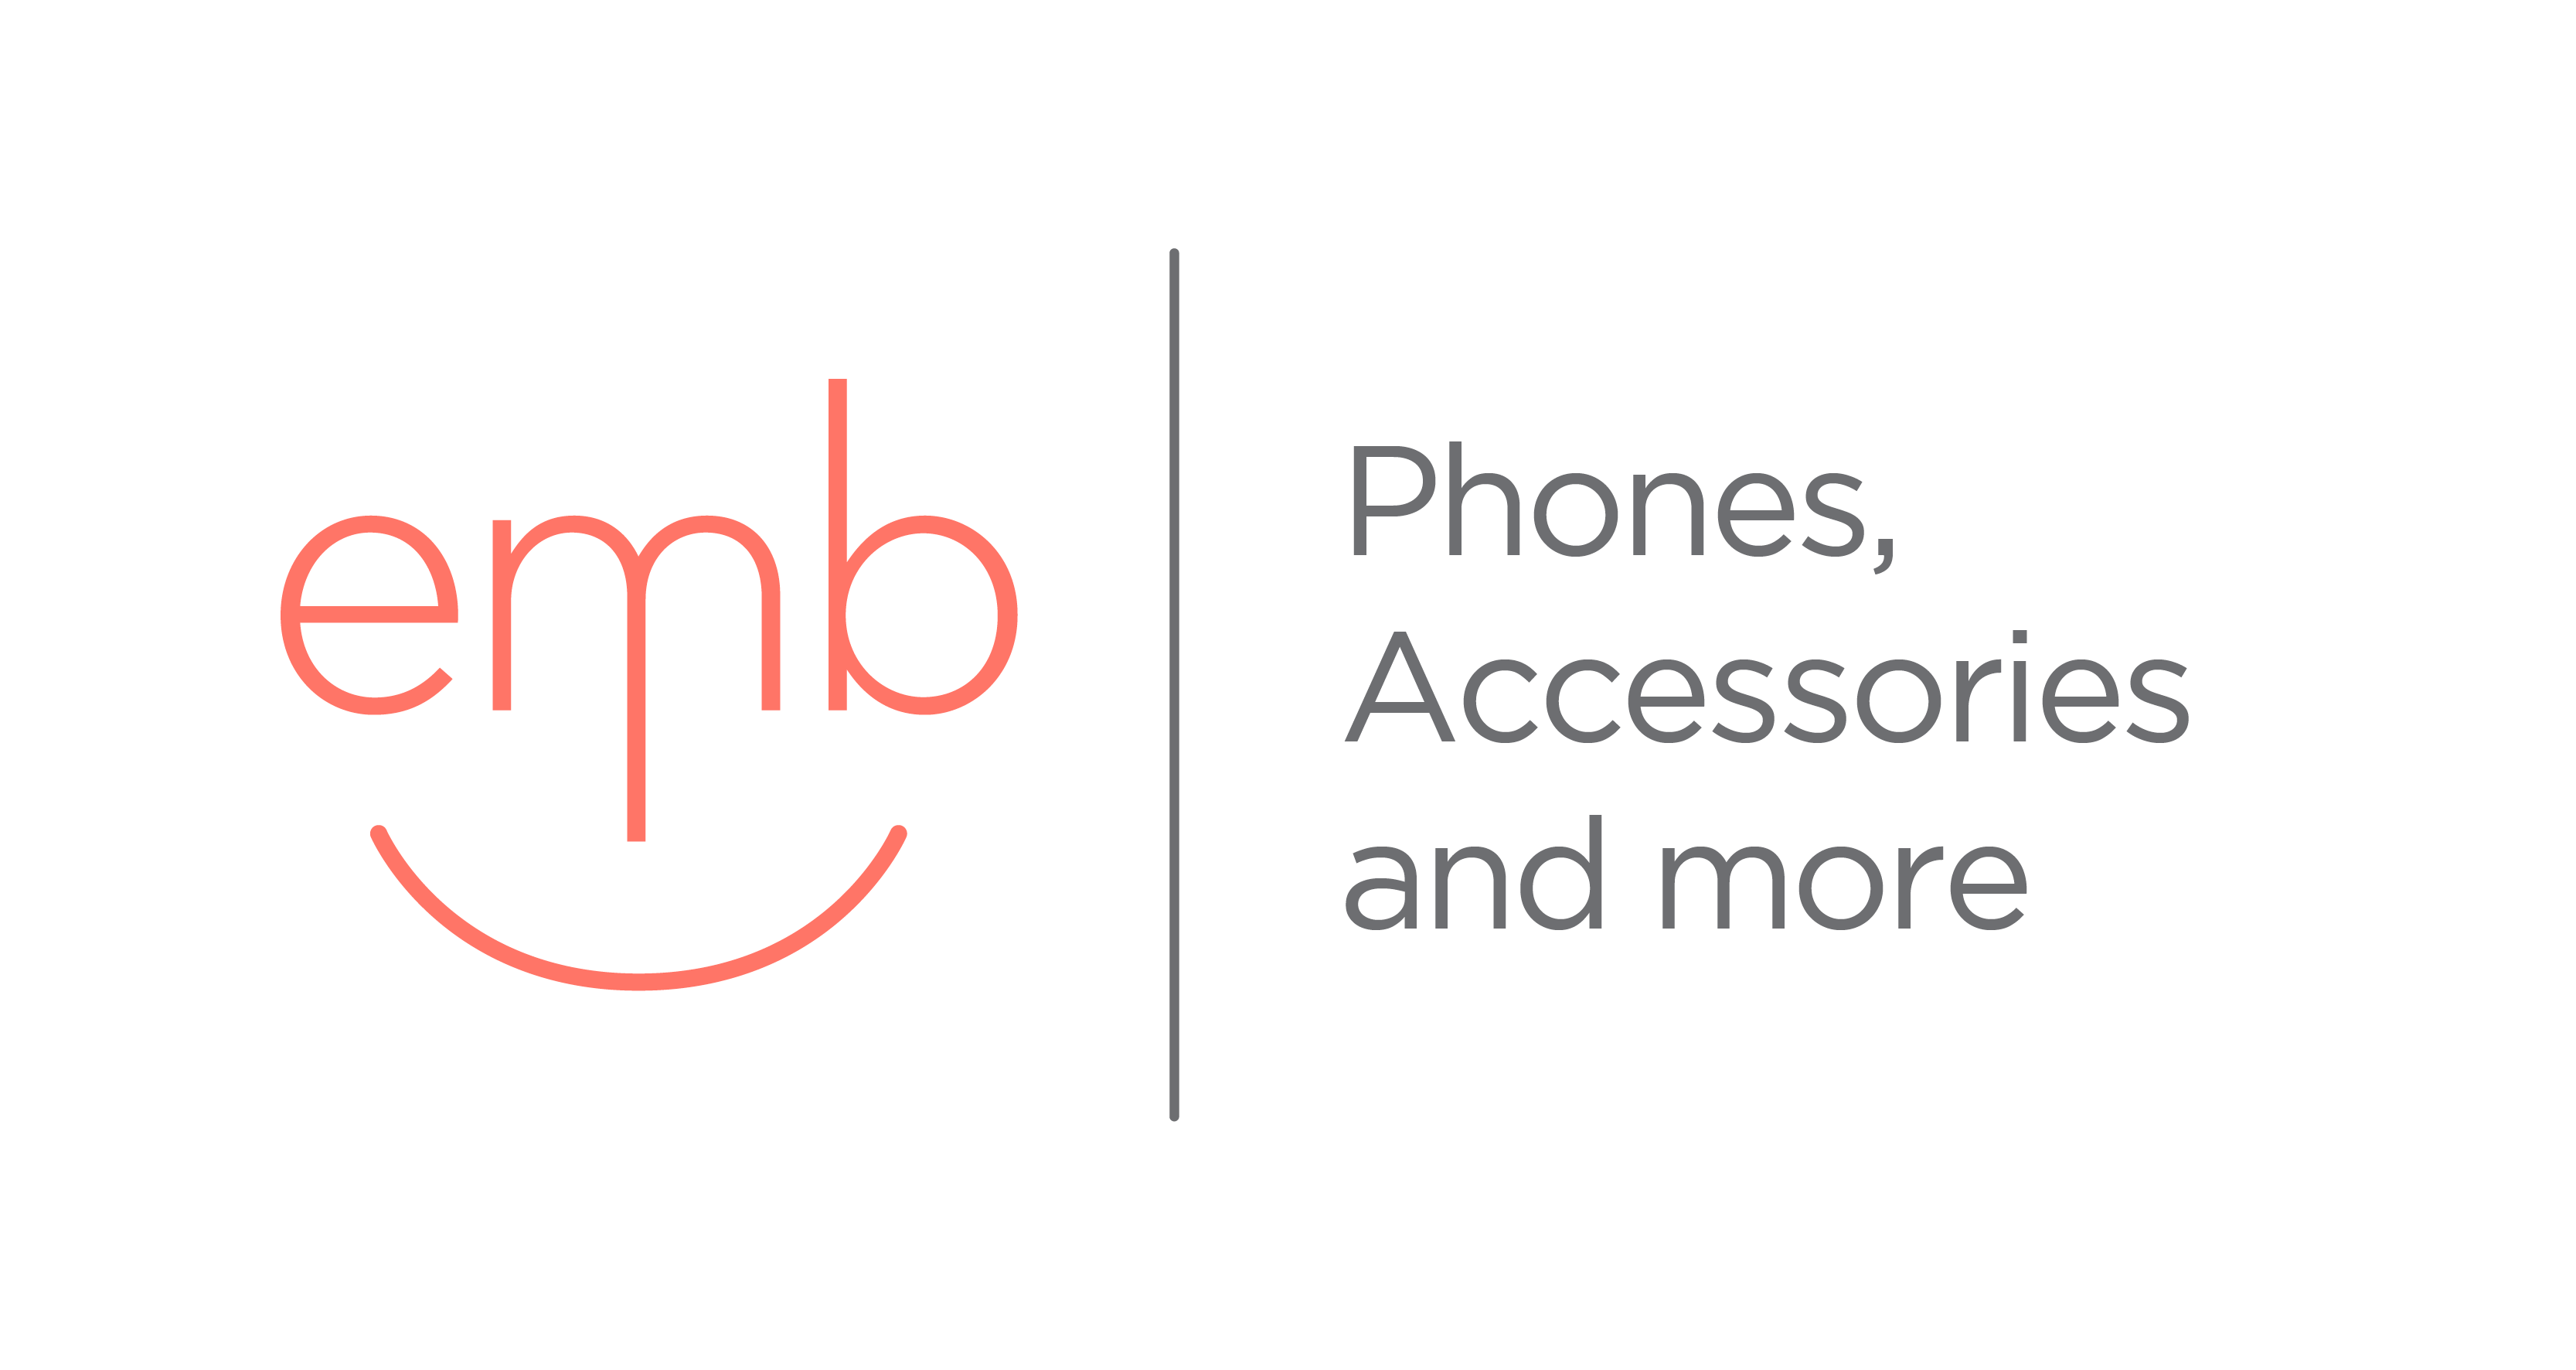 EMB - Phones, Accessories and more